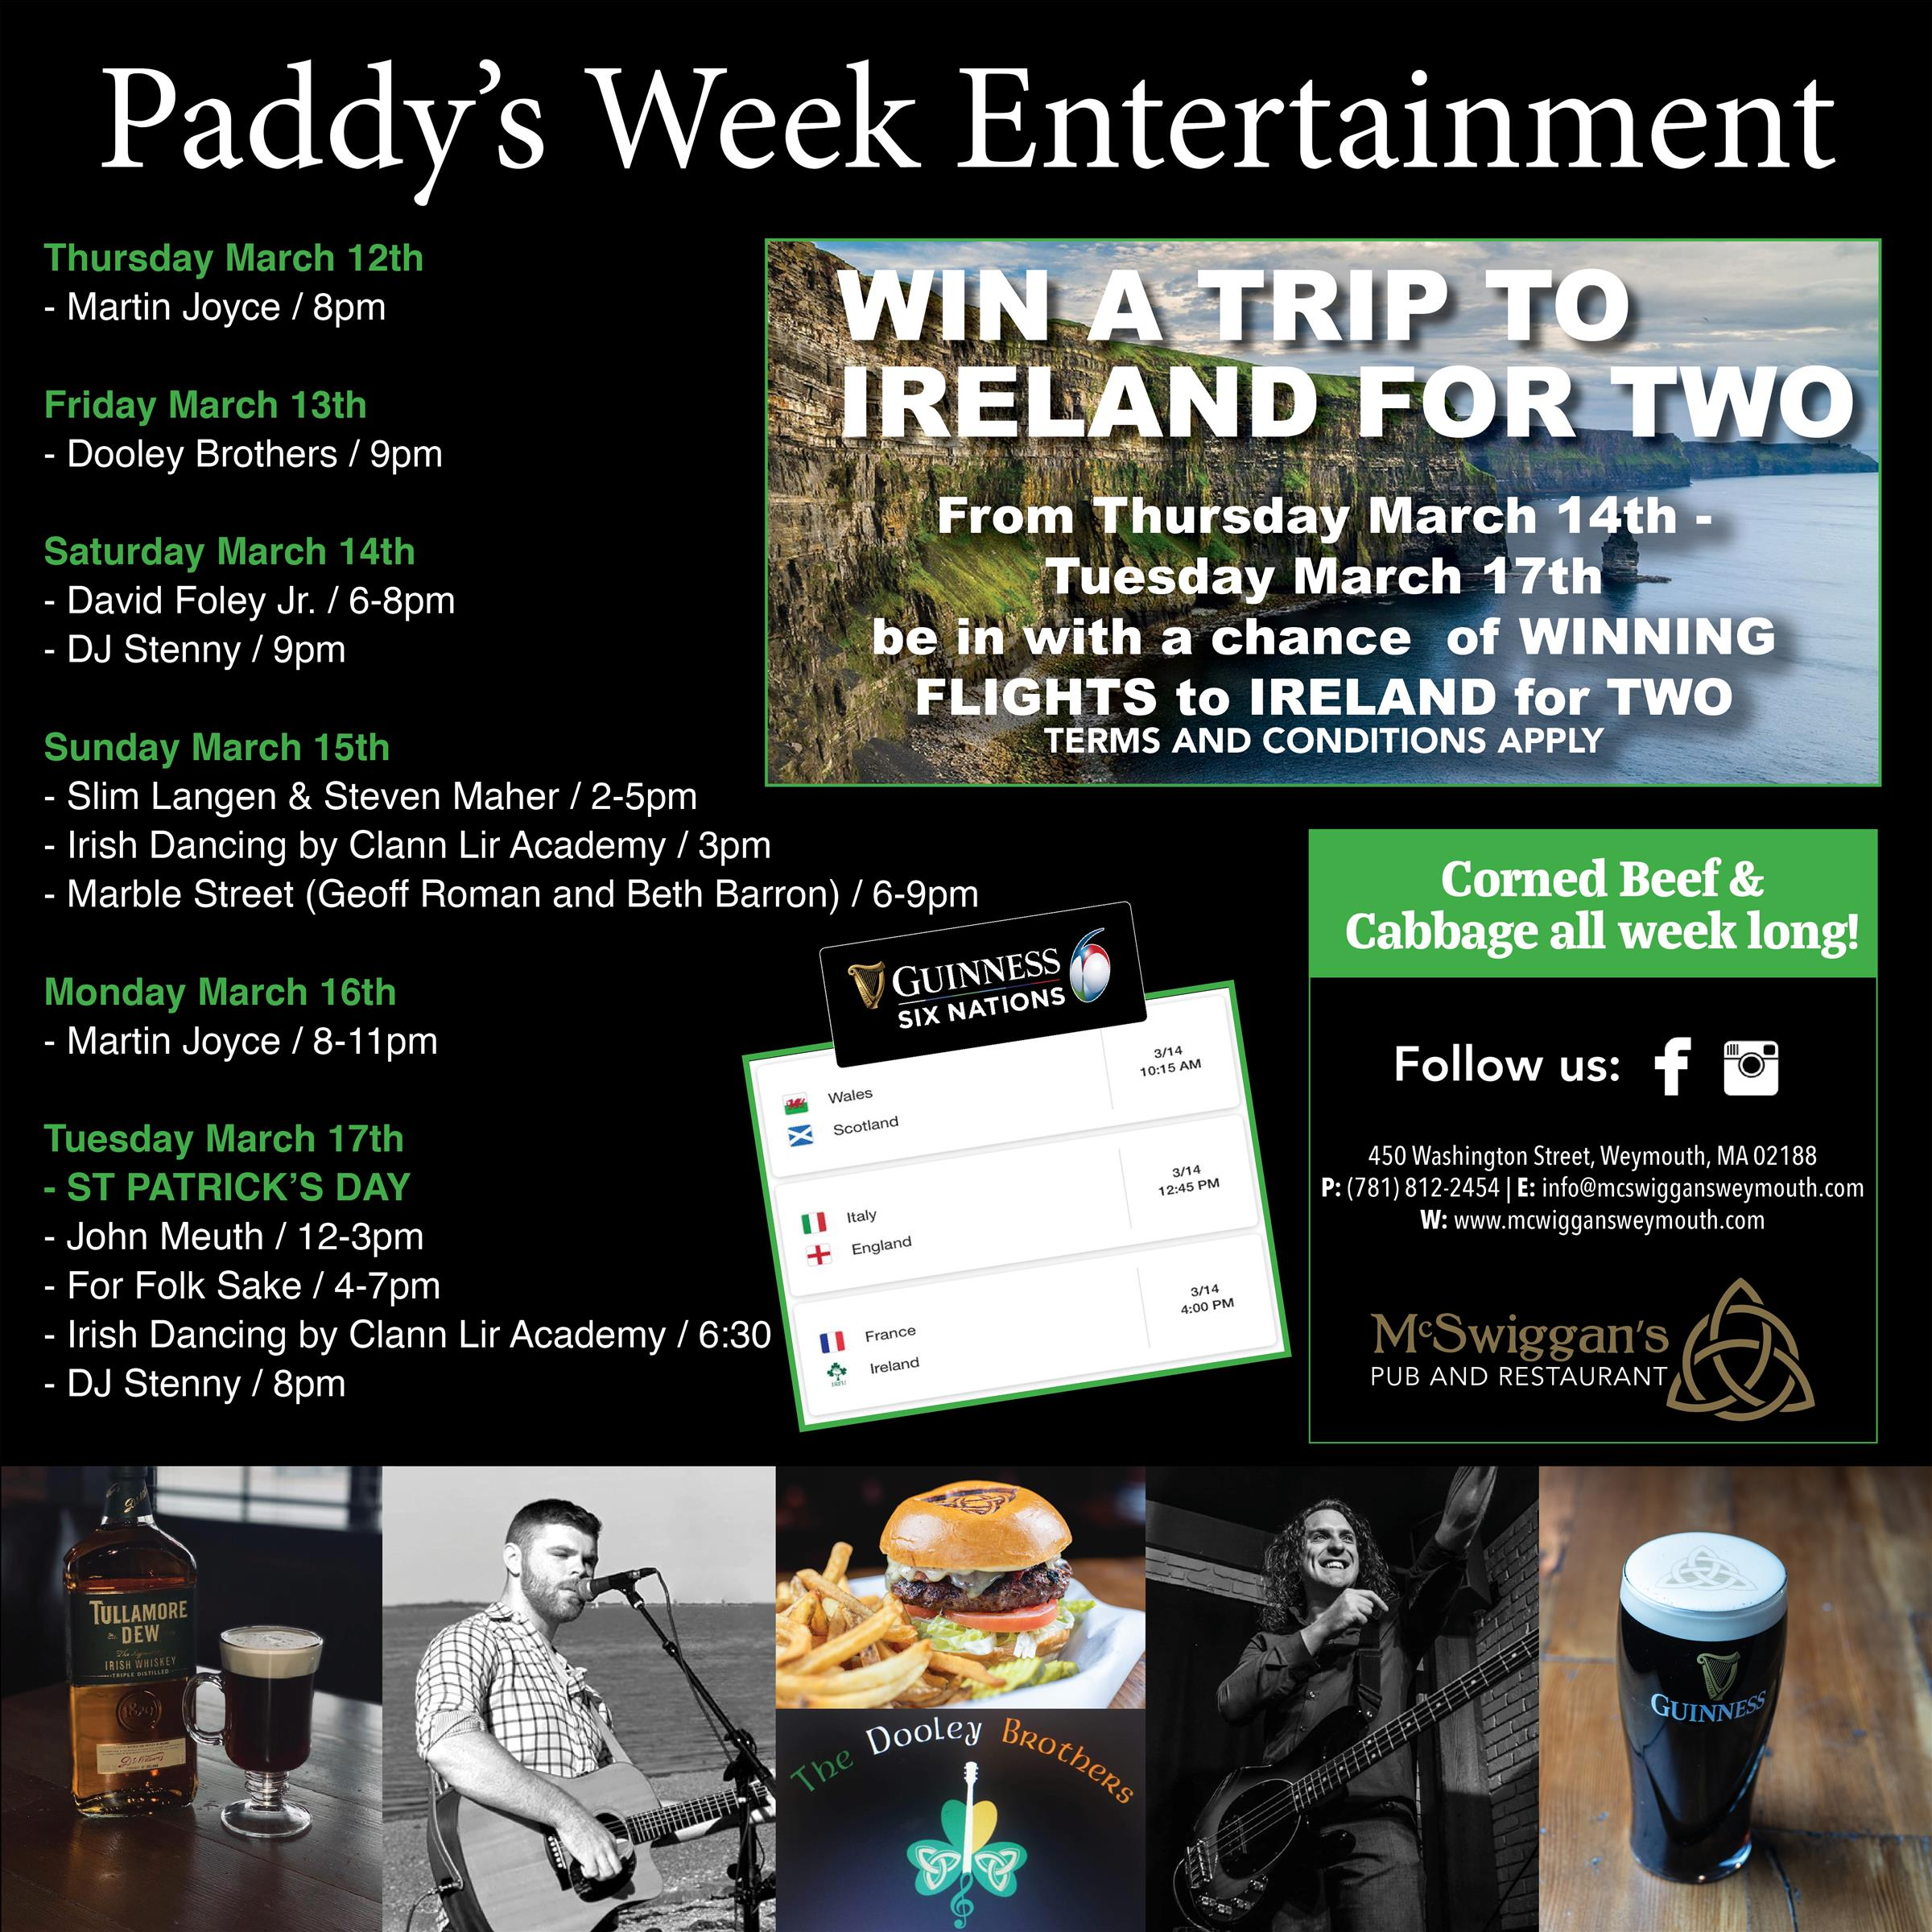 Paddys week entertainment| Thursday March 12th martin Joyce 8pm | Friday March 13th Dooley Brothers 9pm | Saturday March 14th david foley jr. 6 to 8pm and DJ Stenny at 9 pm | Sunday March 15th slim langen and steven maher 2-5 pm and Irish dancing at 3pm and marble street at 6-9 pm | Monday March 16th Martin joyce 8 - 11 pm | Tuesday March 17th St Patricks Day John Meuth 12- 3 pm and for folk ake 4-7 pm and Irish Dancing at 6:30 pm and Dj Stenny at 8 pm